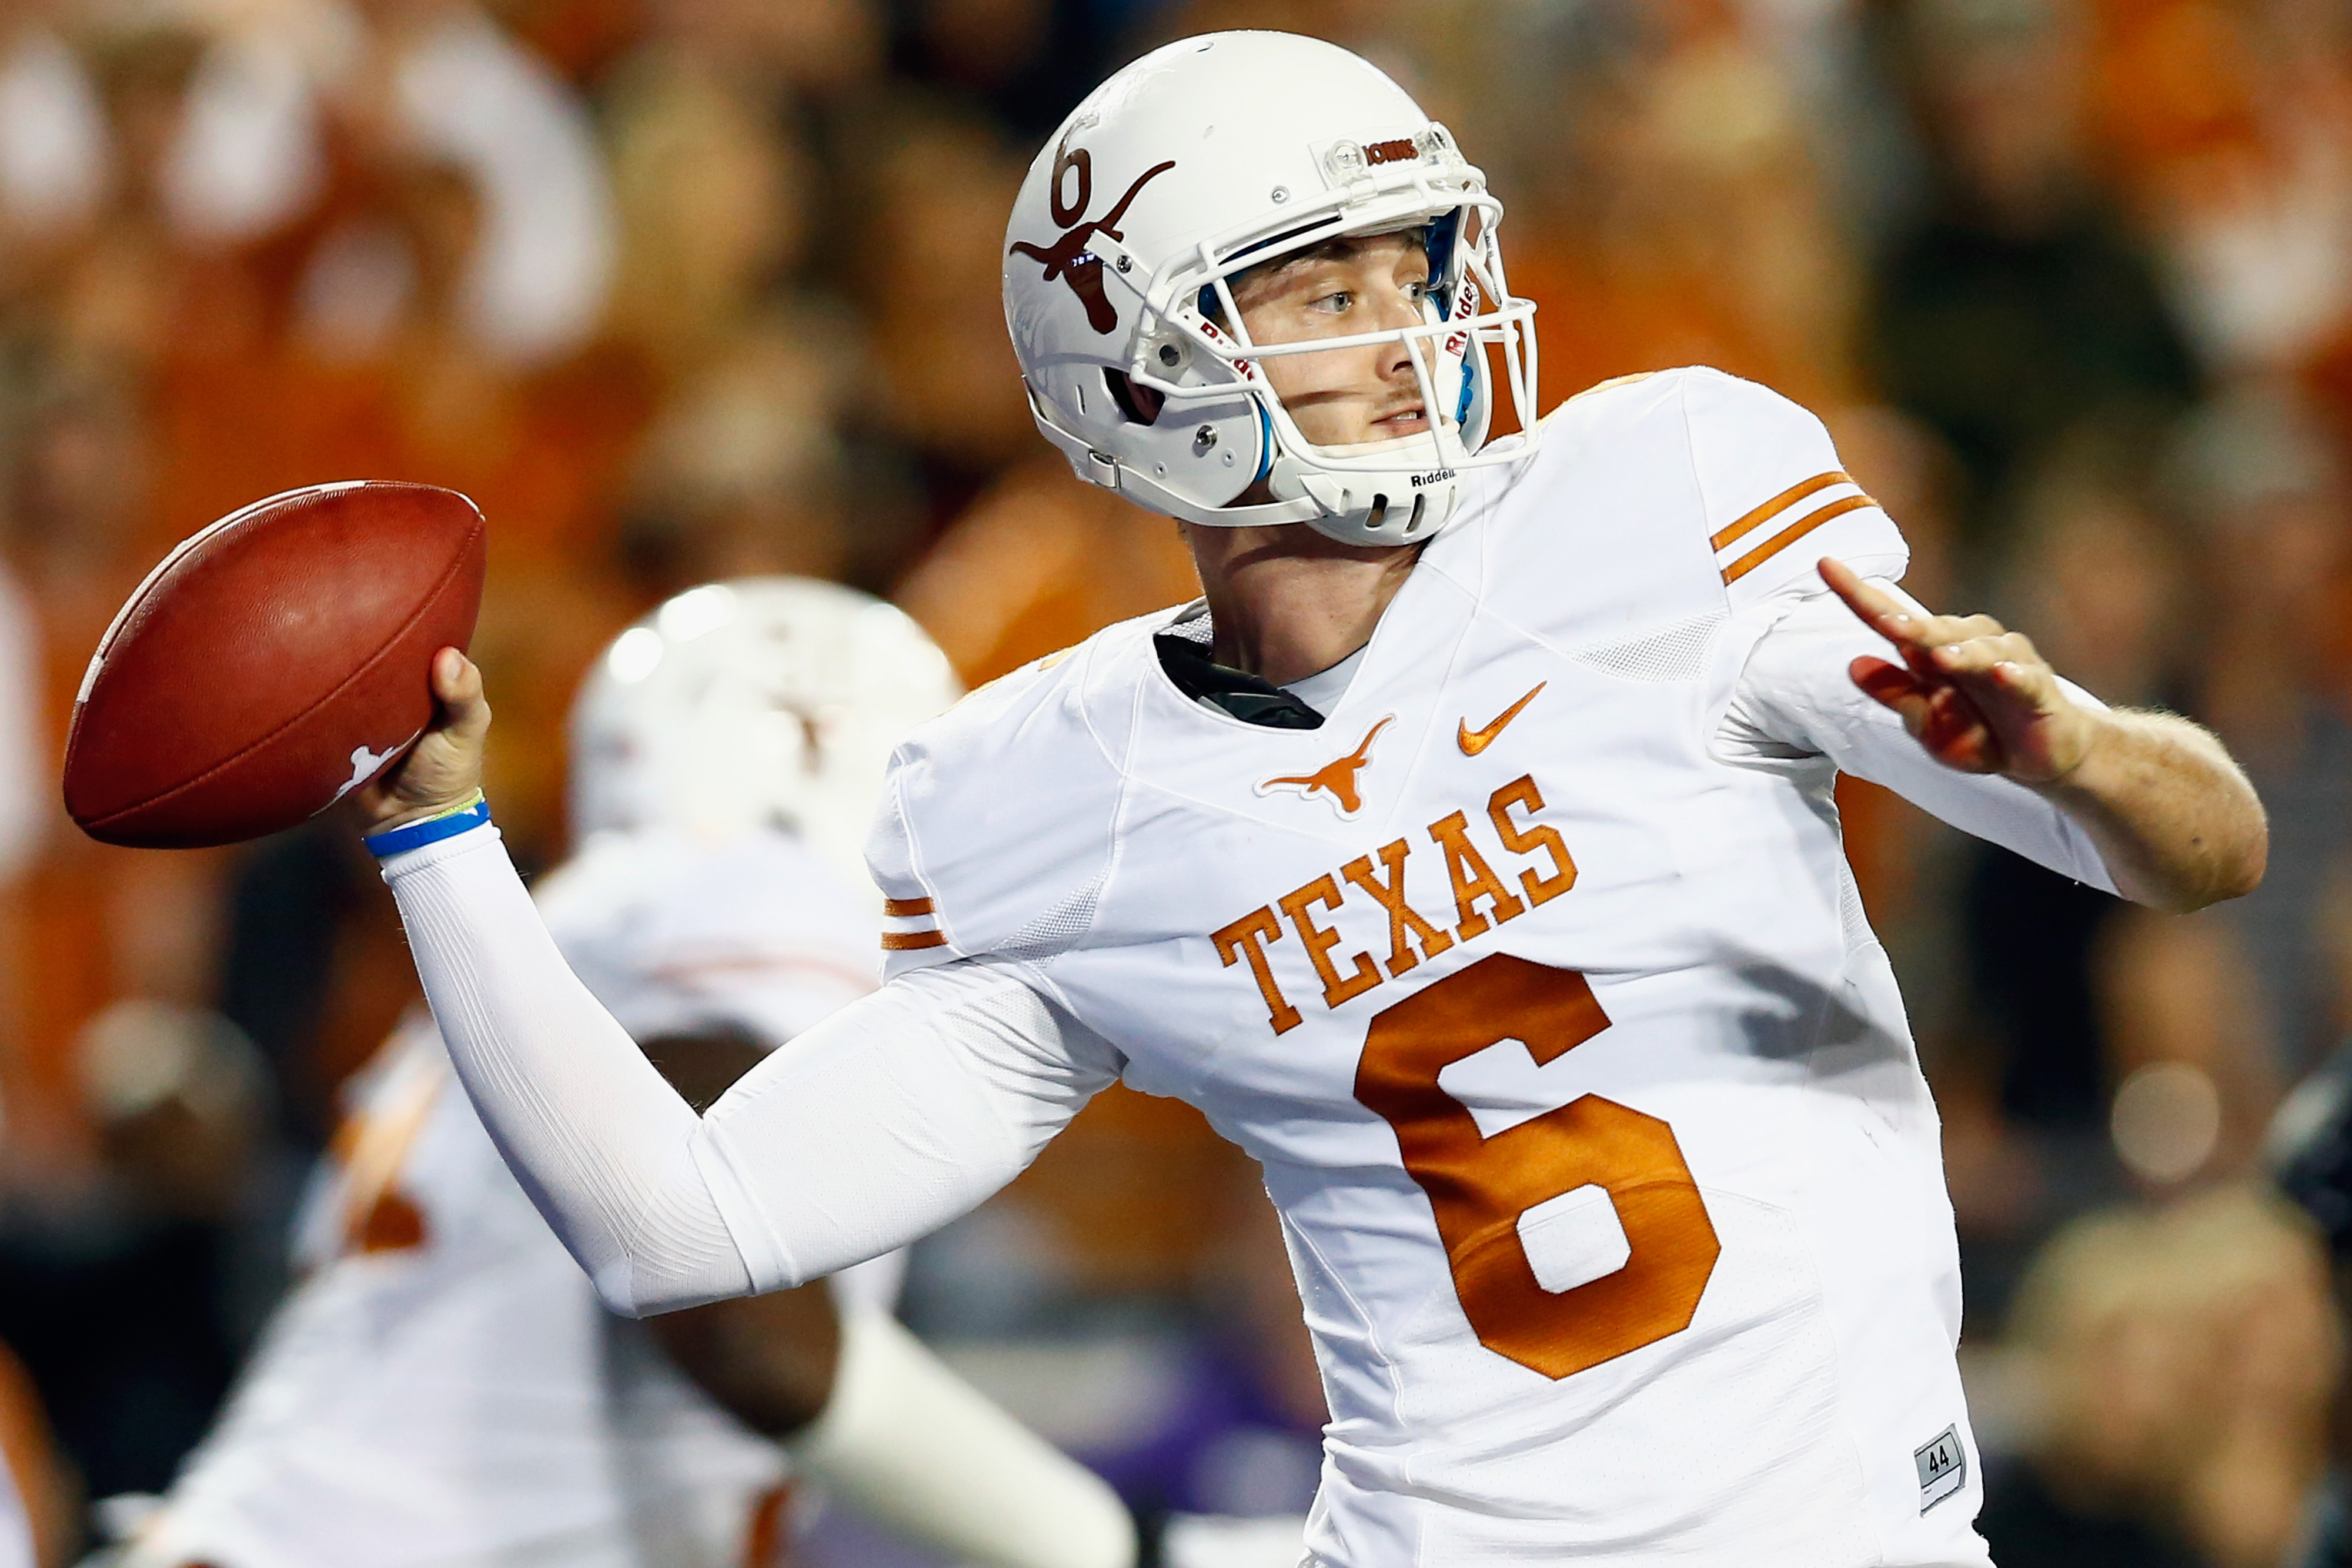 Texas vs. West Virginia final score: Longhorns win 47-40 in OT